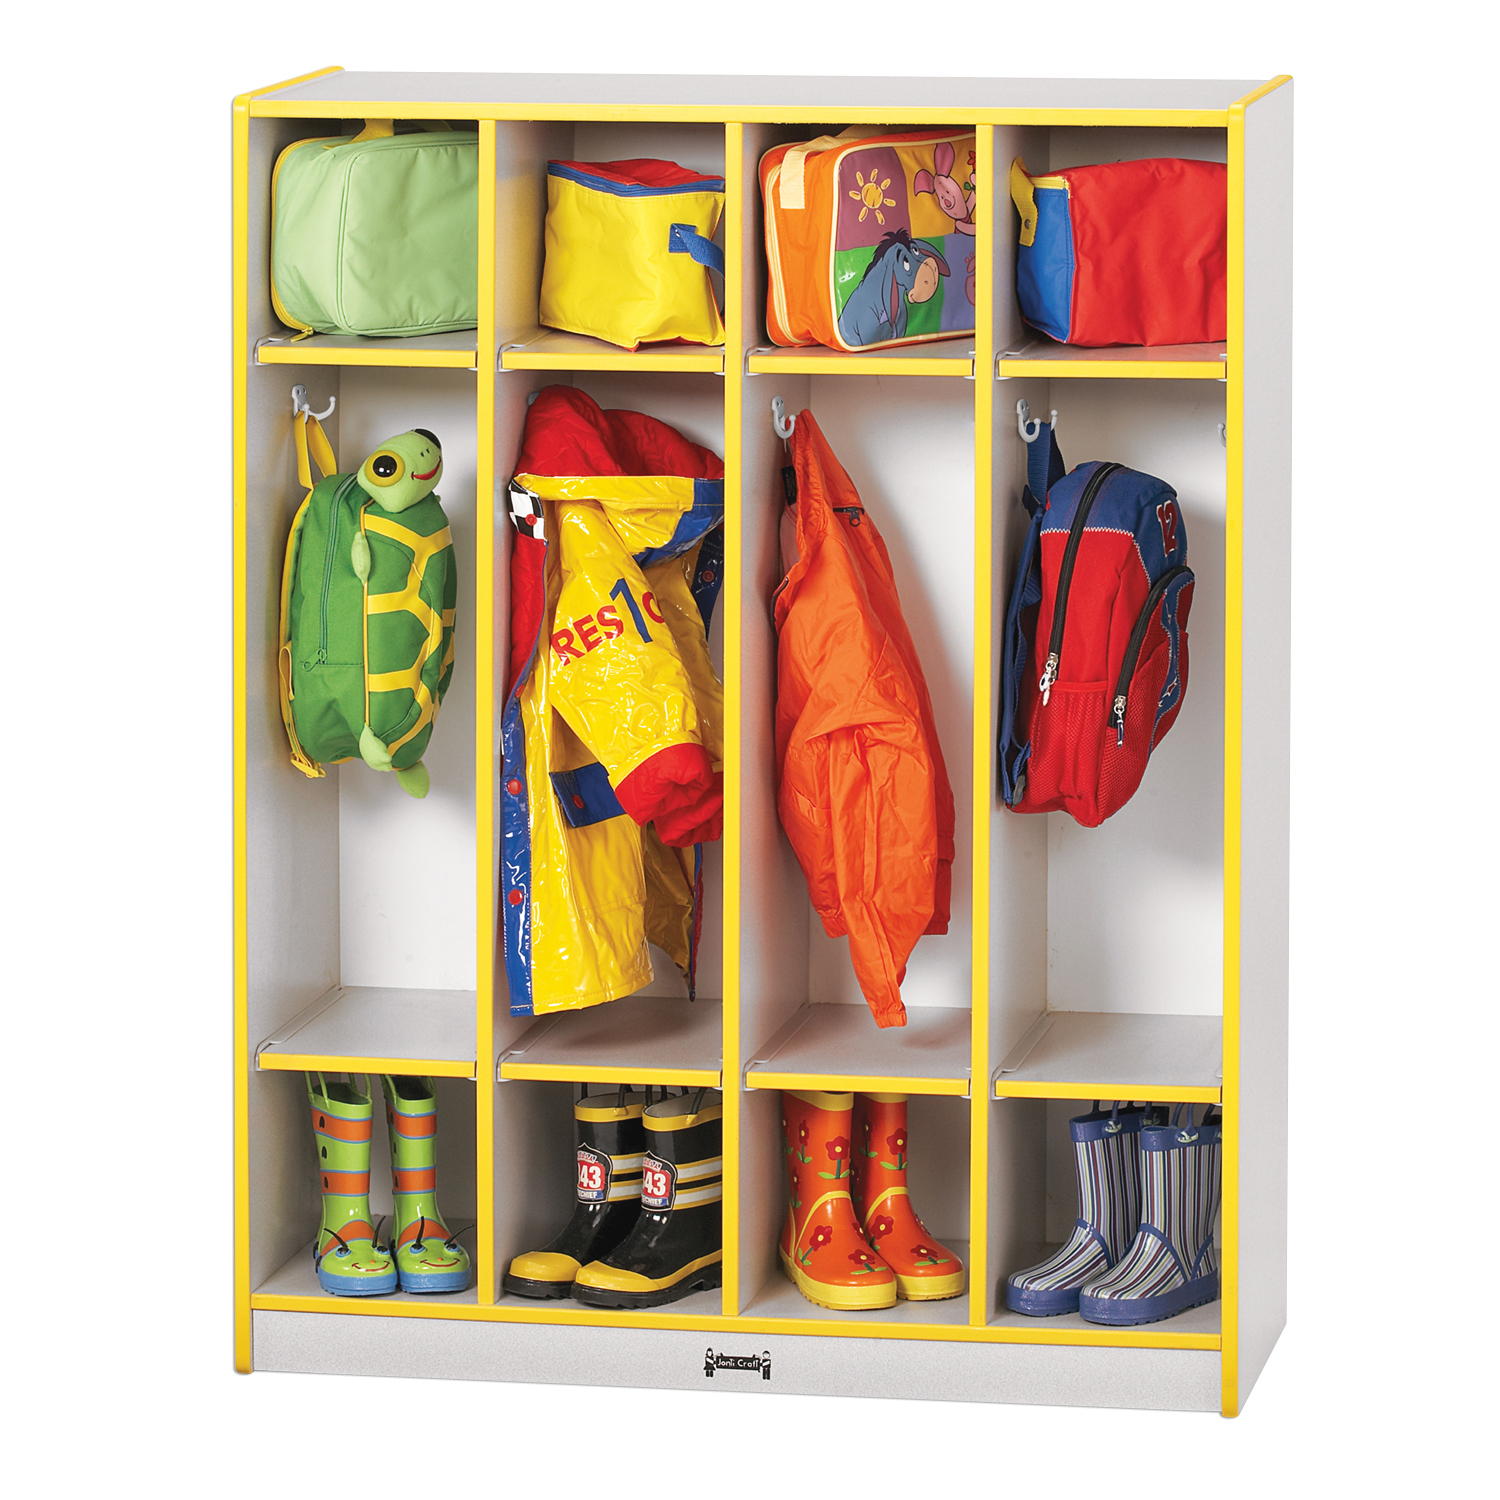 Offex School Kids Belonging Storage 4 Section Coat Locker - Red